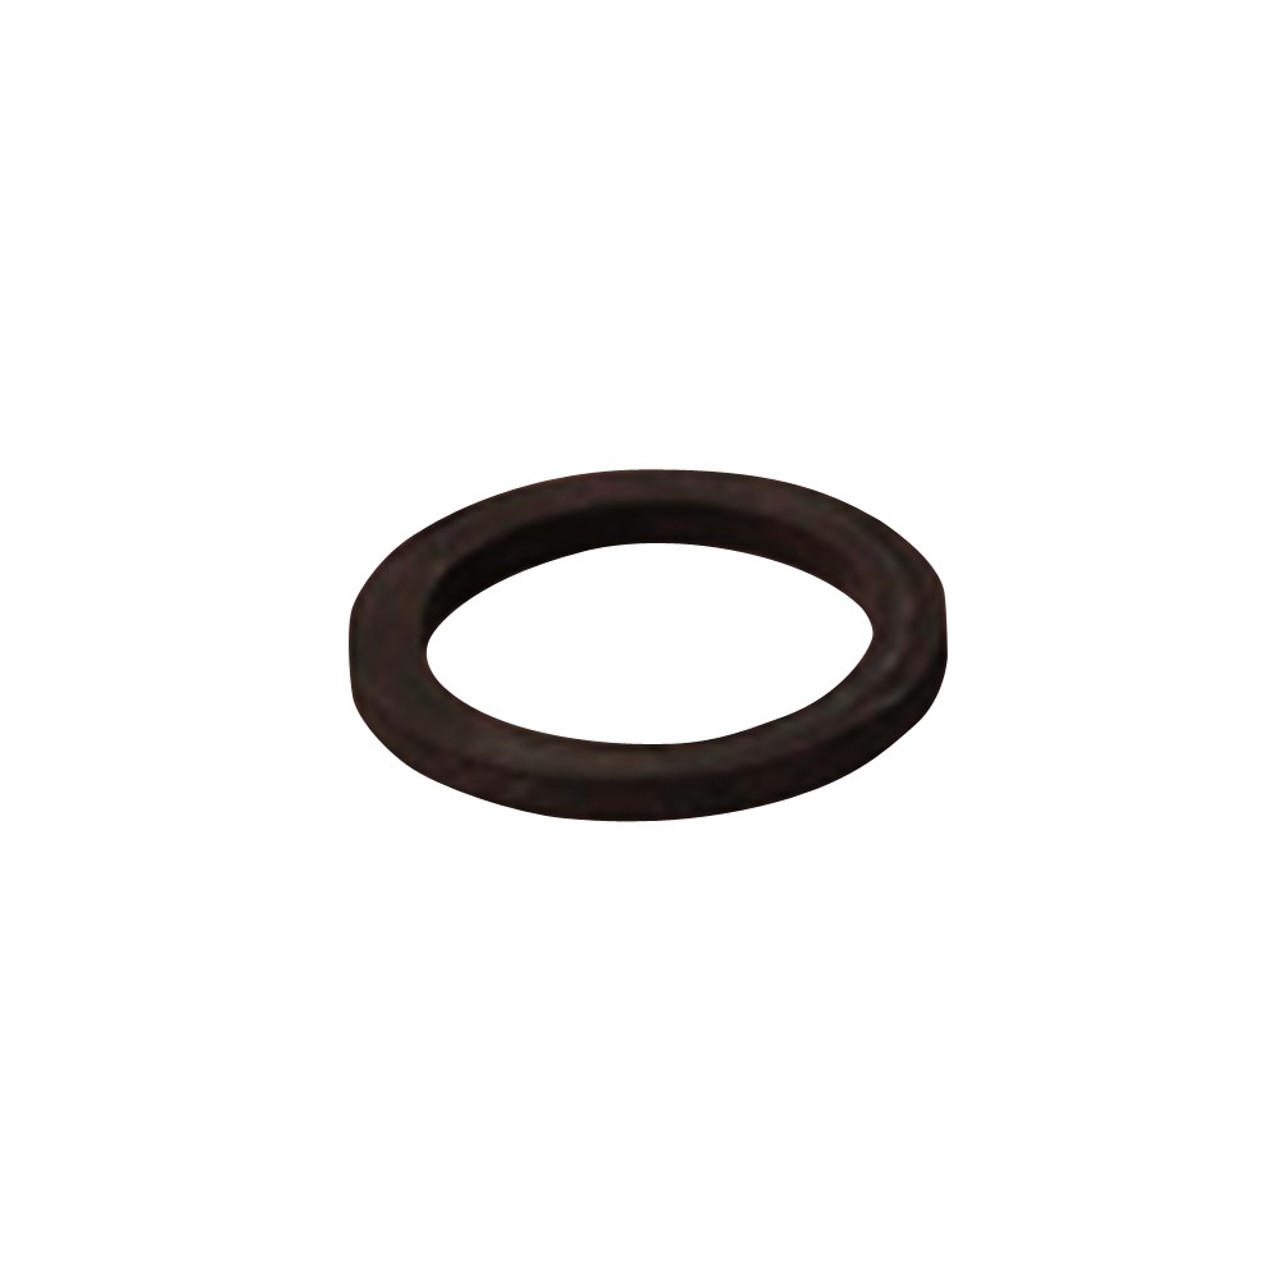 Imer Spare Rubber Material Hose Seal Gasket For 35dia  Hoses